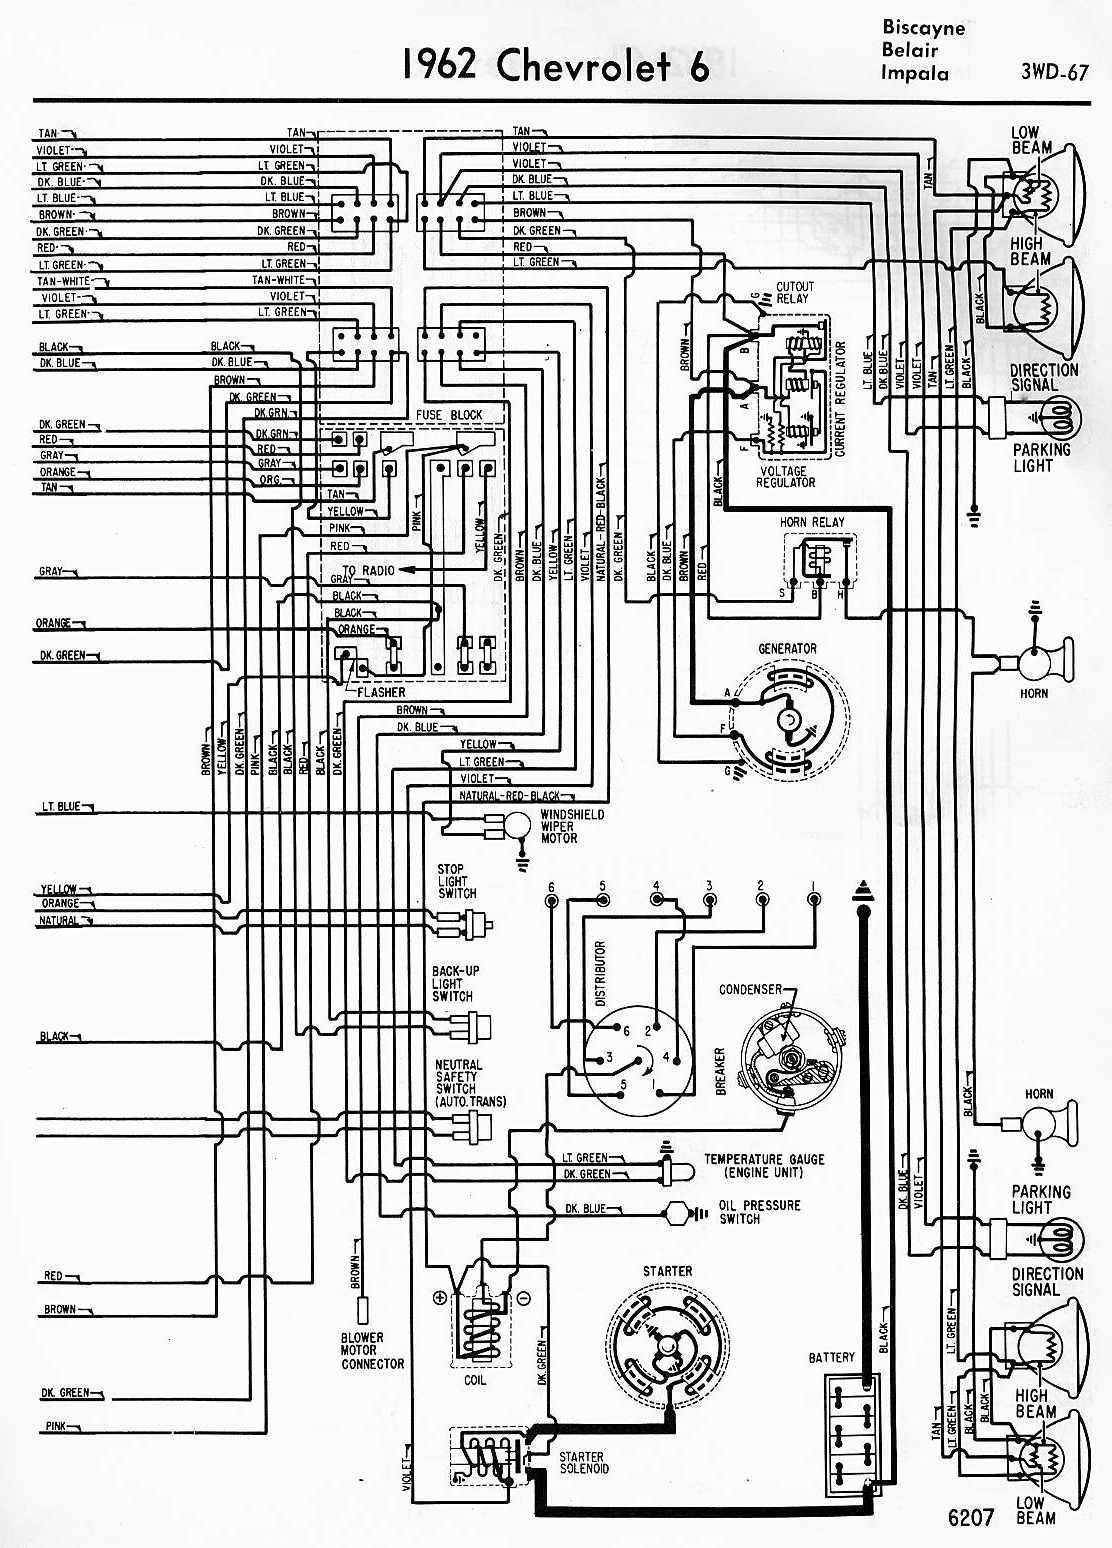 1972 Chevy Impala Wiring Harness 1966 Diagram List Of Schematic Circuit Chevelle Auto Electrical Rh Stanford Edu Uk Co Gov Bitoku Me Starter